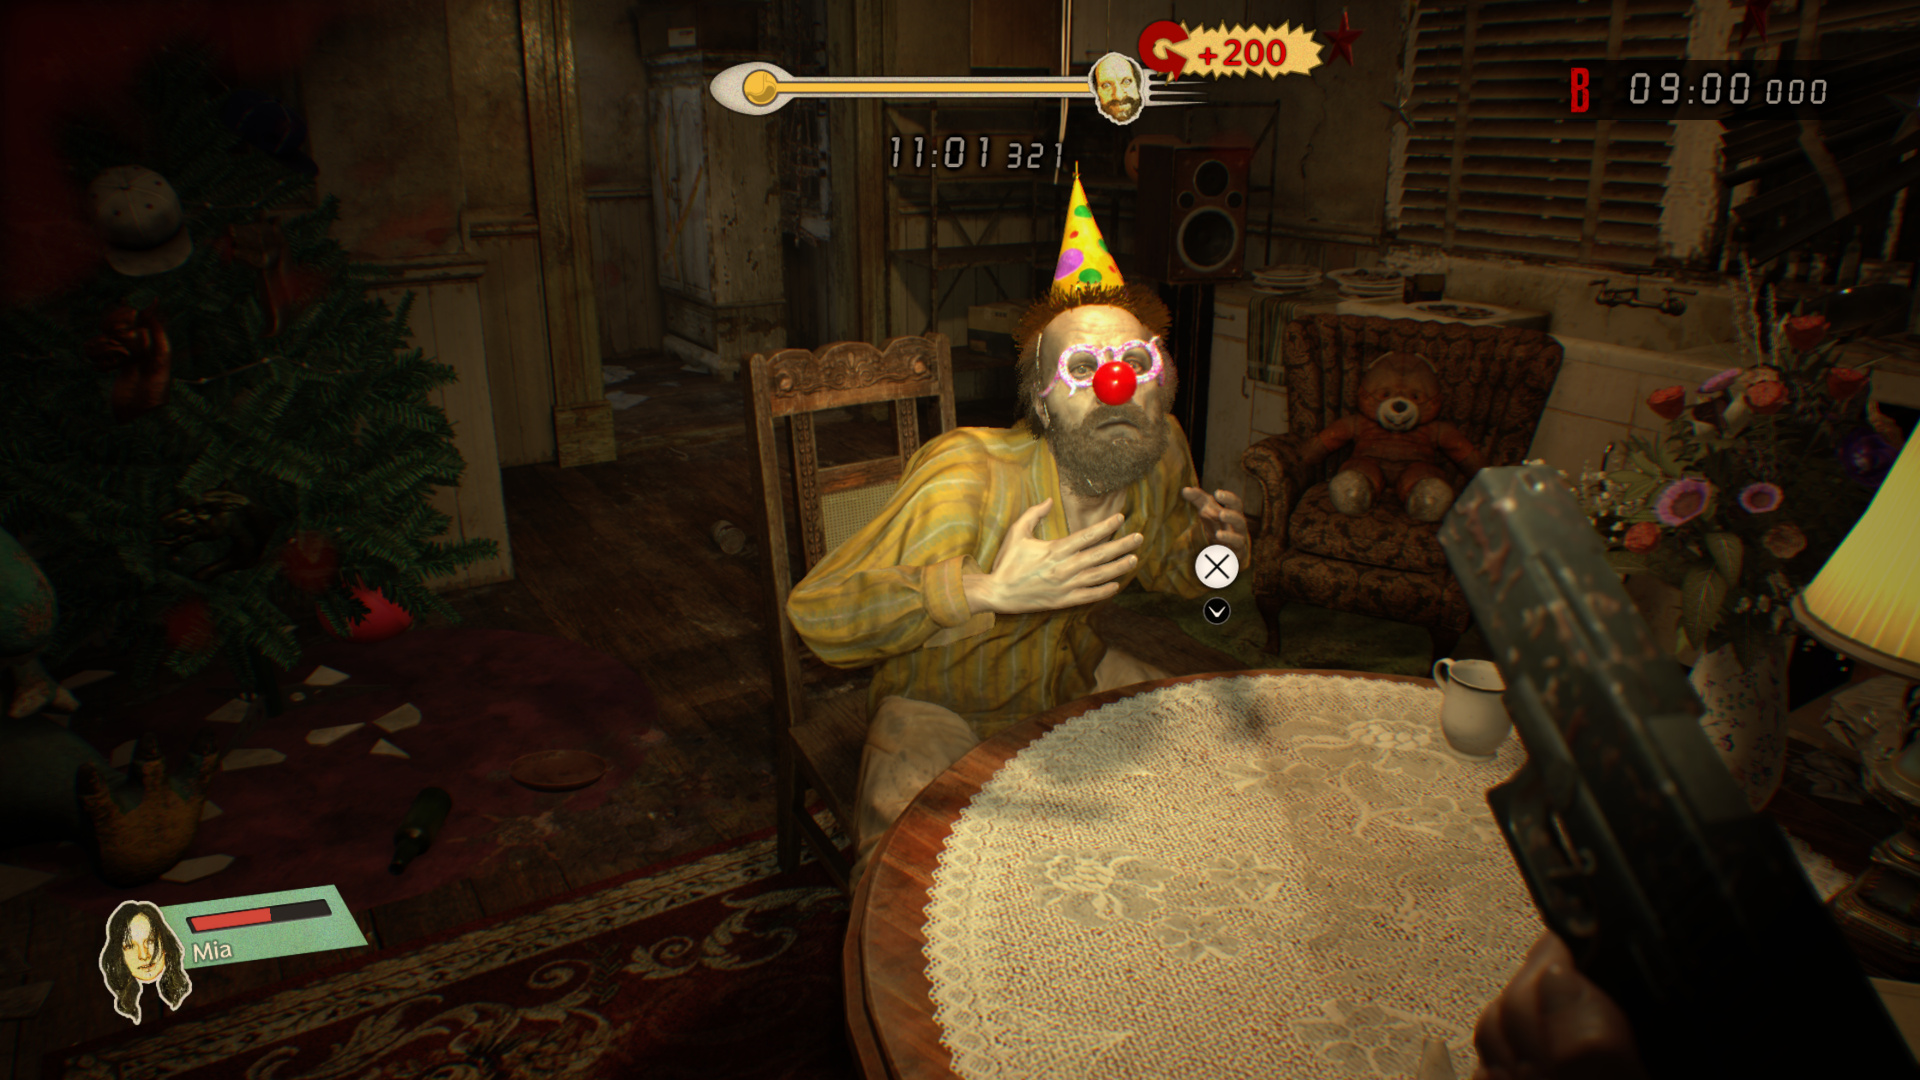 A classic Resident Evil game is getting a major overhaul: IMAGES, VIDEO - Business Insider